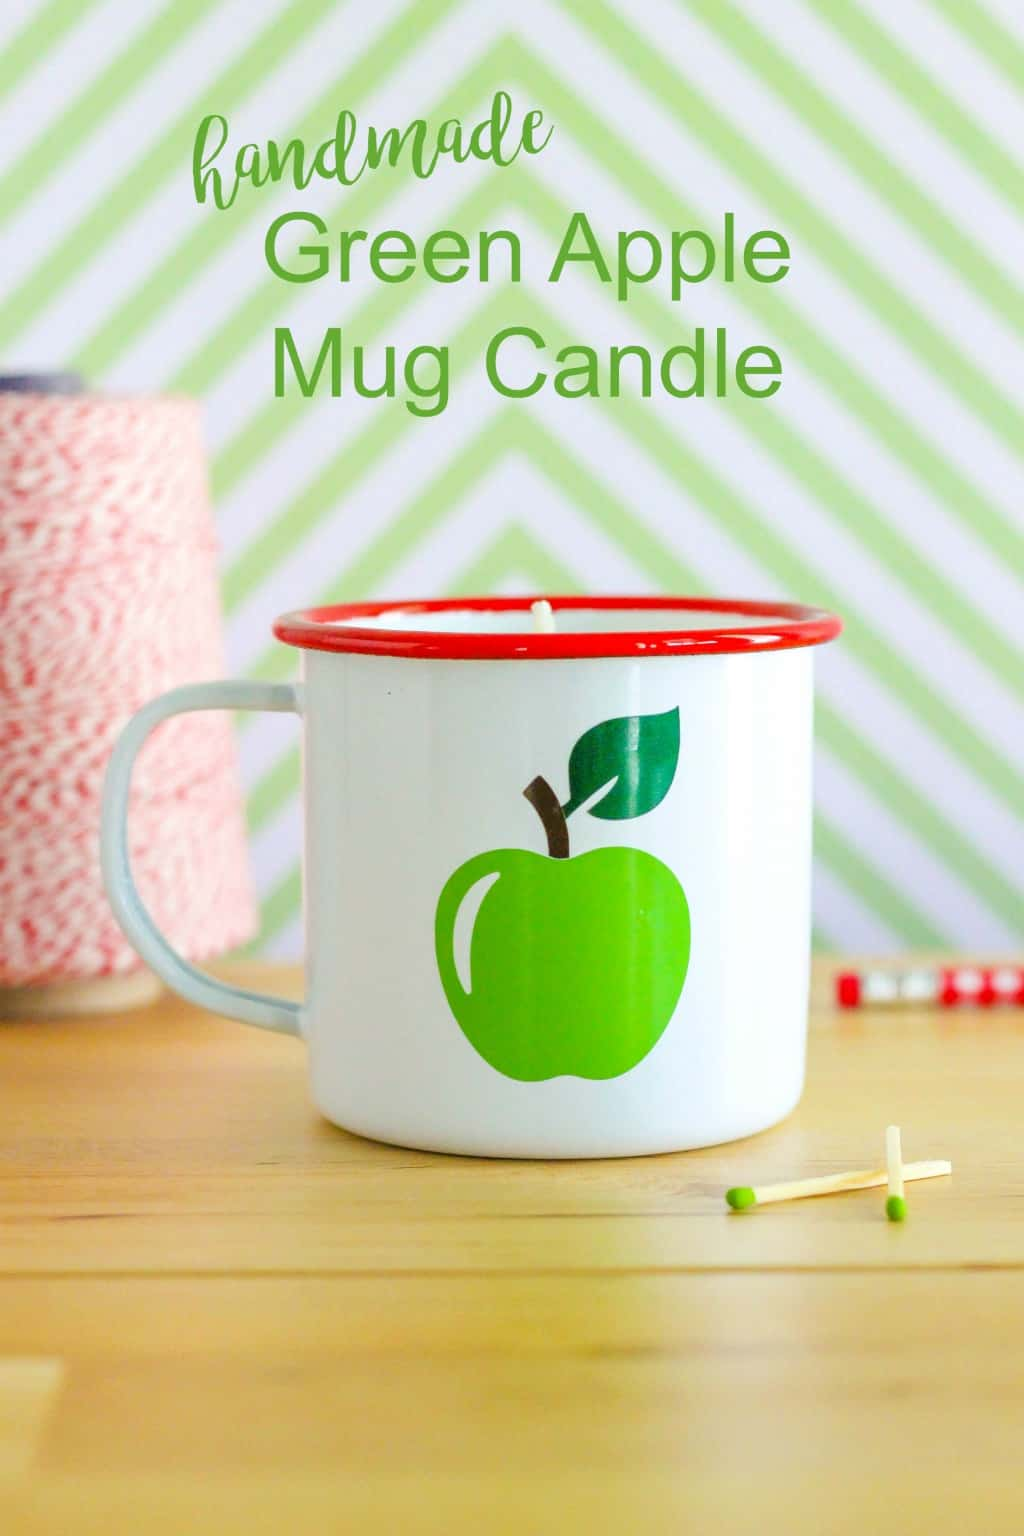 Make your own Handmade Green Apple Mug Candle using soy wax and essential oil. This candle makes a perfect gift for teachers or fall.